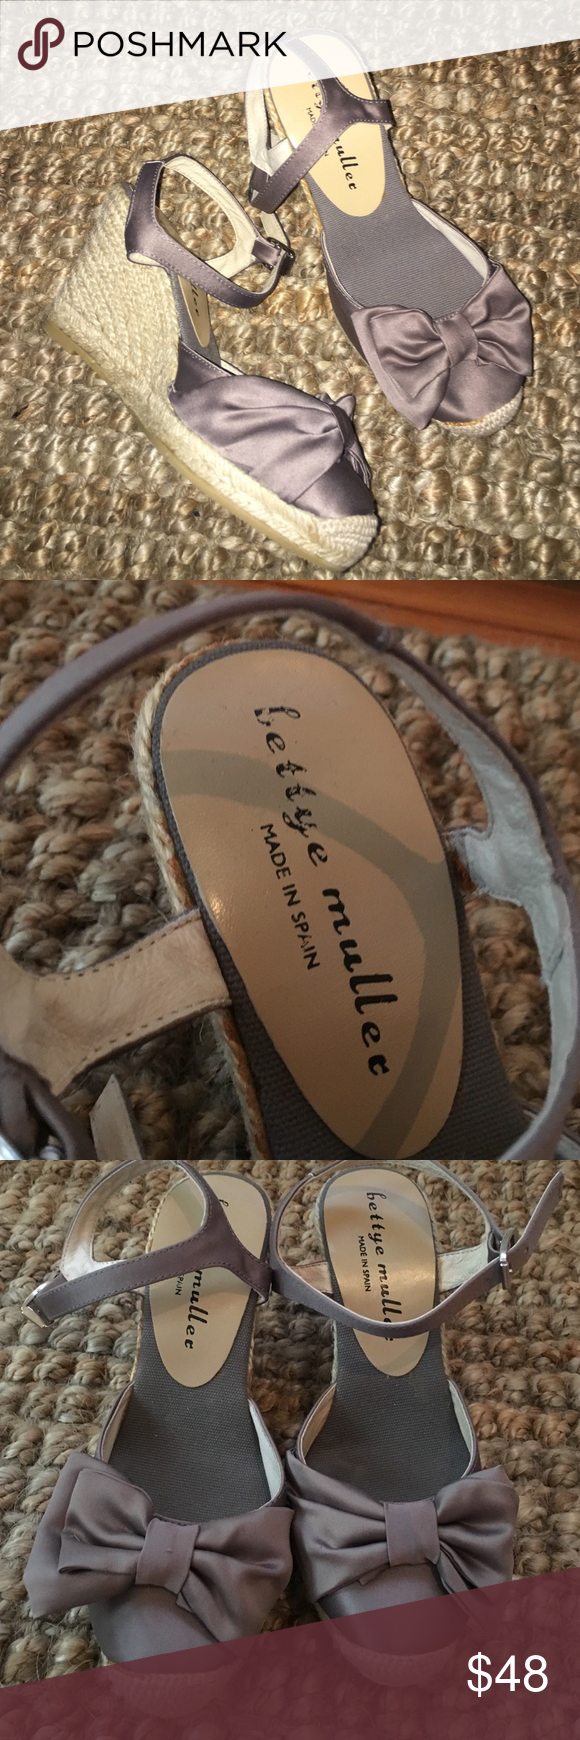 BETTYE MULLER Silk Bow Espadrille Heels Size 35! BETTYE MULLER Silk Bow Espadrille Heels Size 35! New heels. Heel height 3 inches and platform height .5! Brand-new no box or tags Anthropologie Shoes Espadrilles